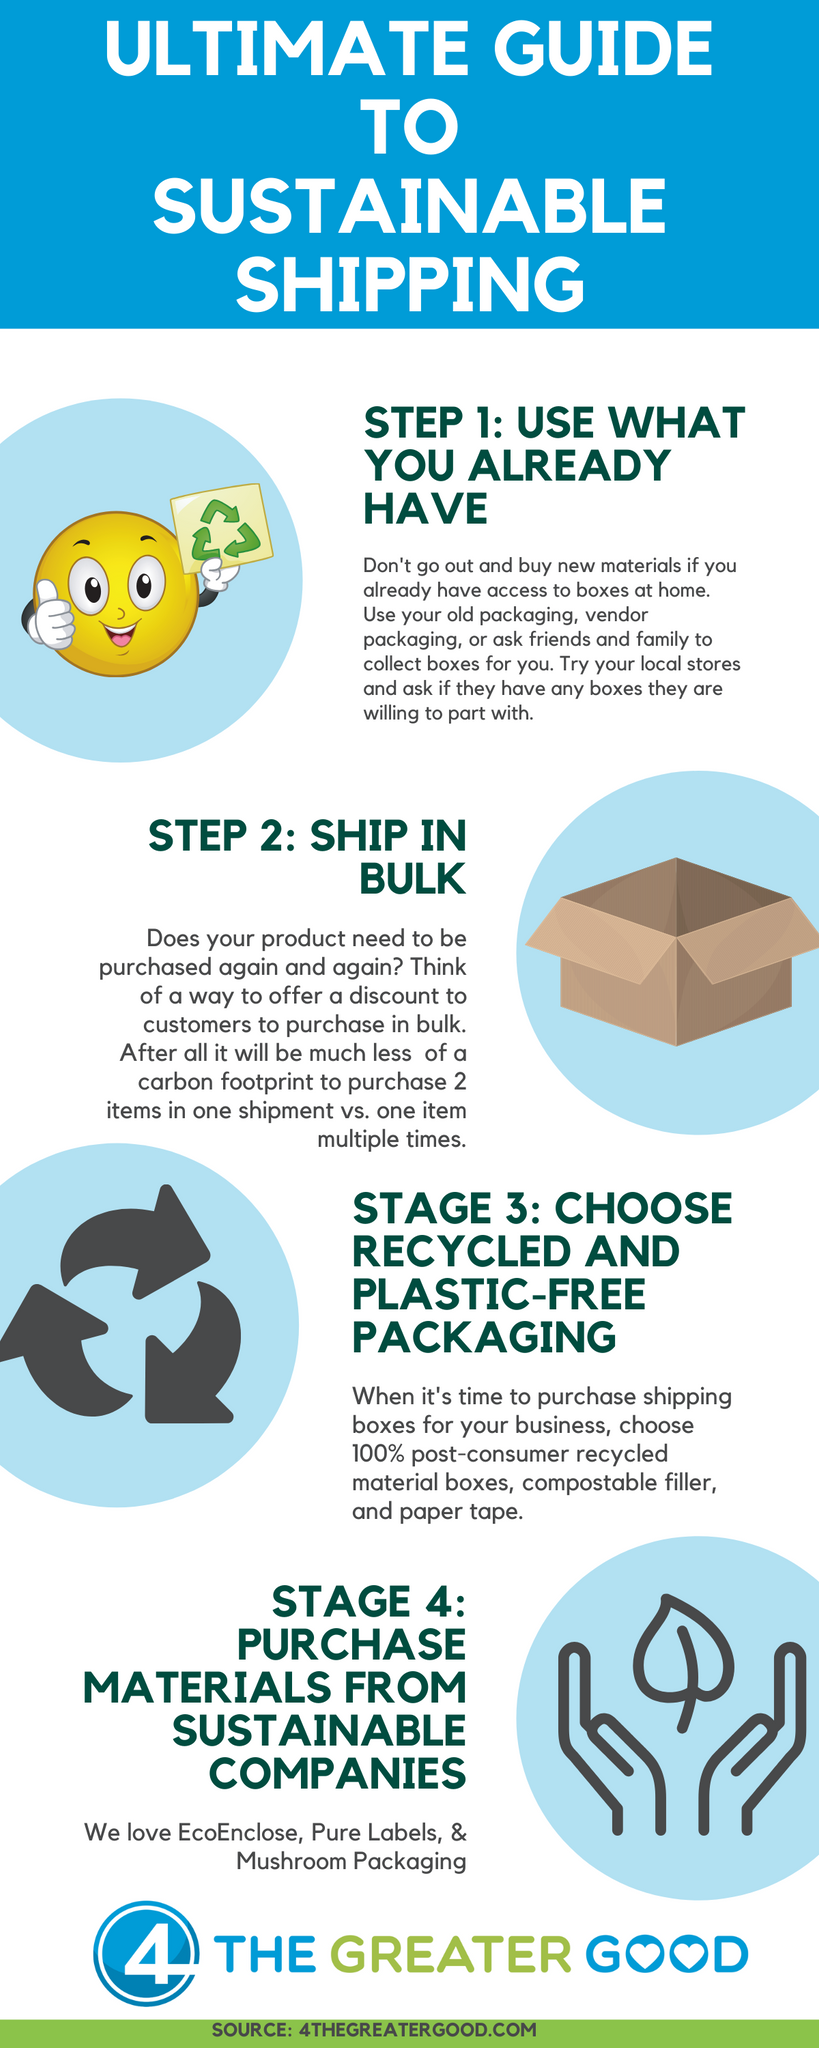 Ultimate Guide to Sustainable Shipping